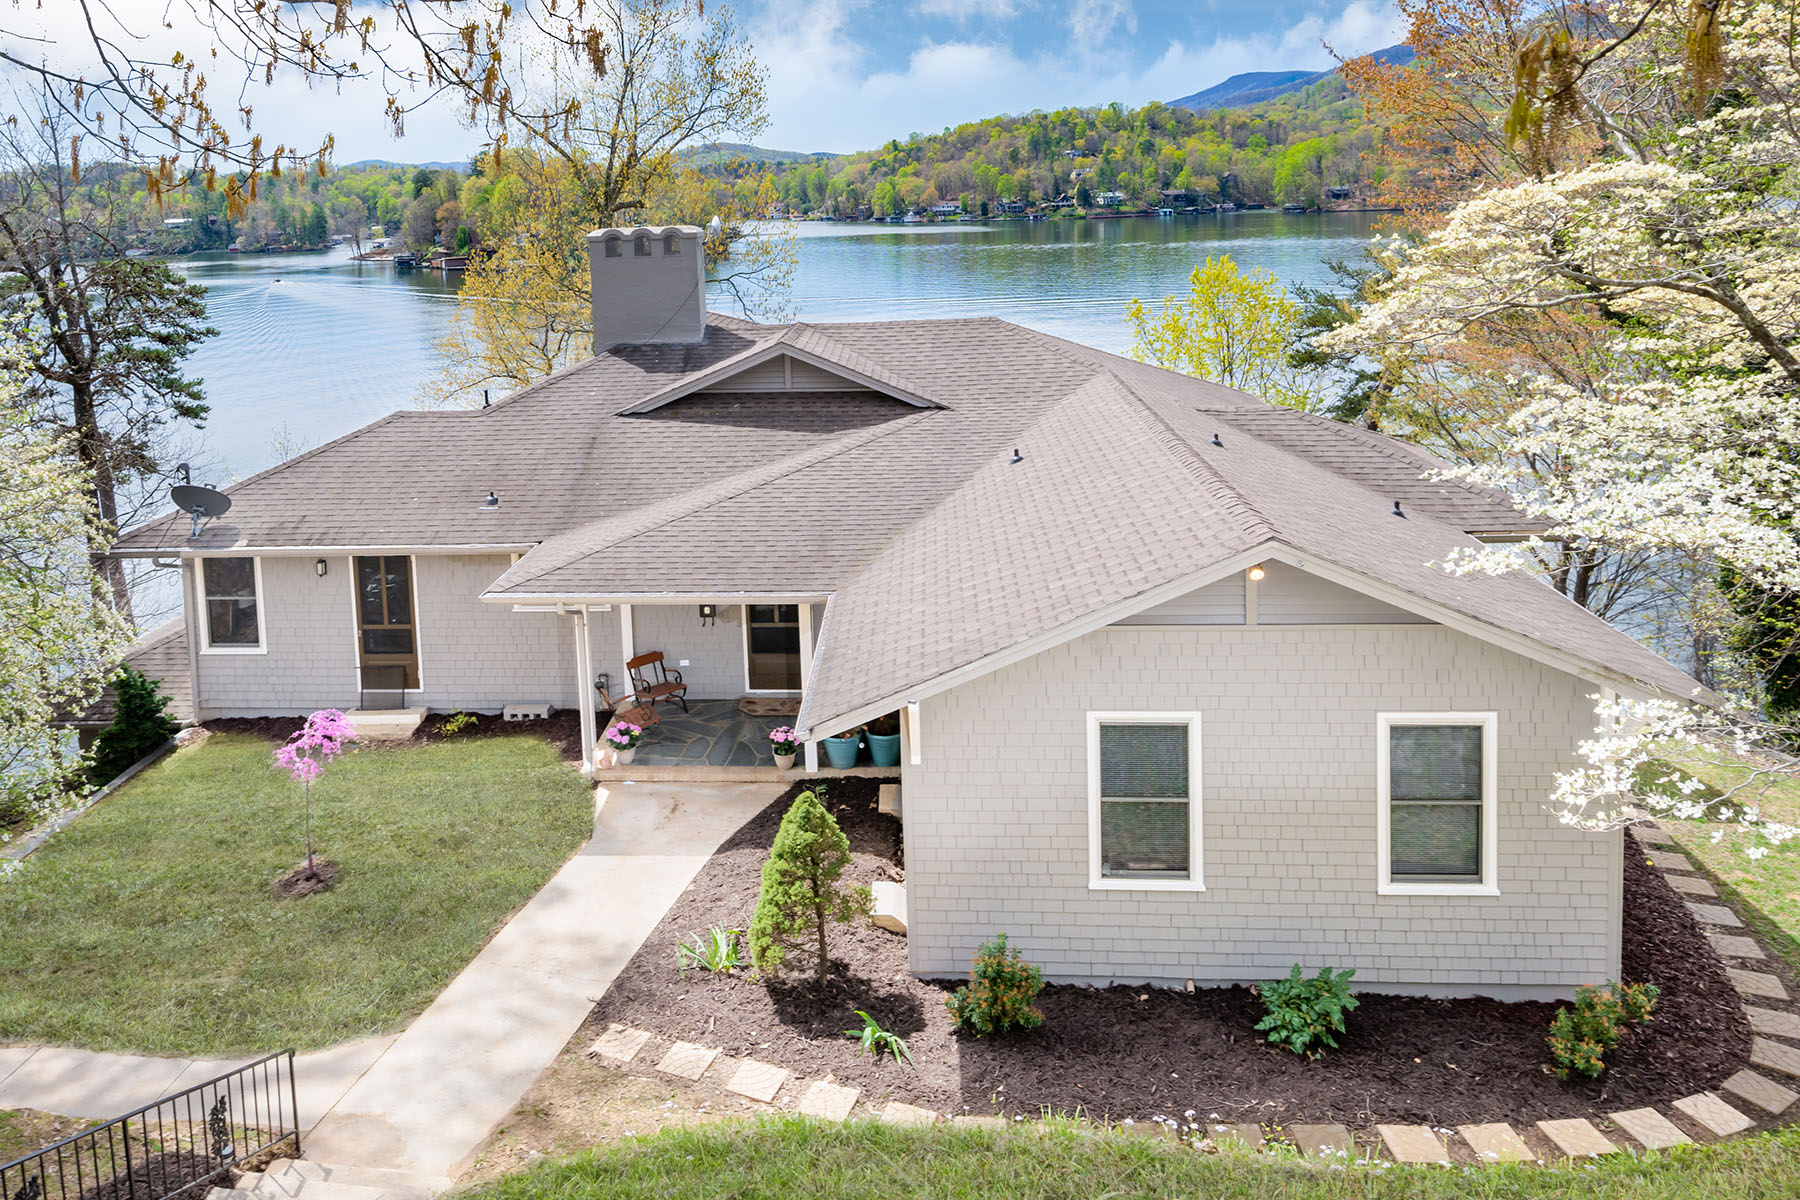 Single Family Homes for Sale at 171 Deerwood Dr Lake Lure, North Carolina 28746 United States